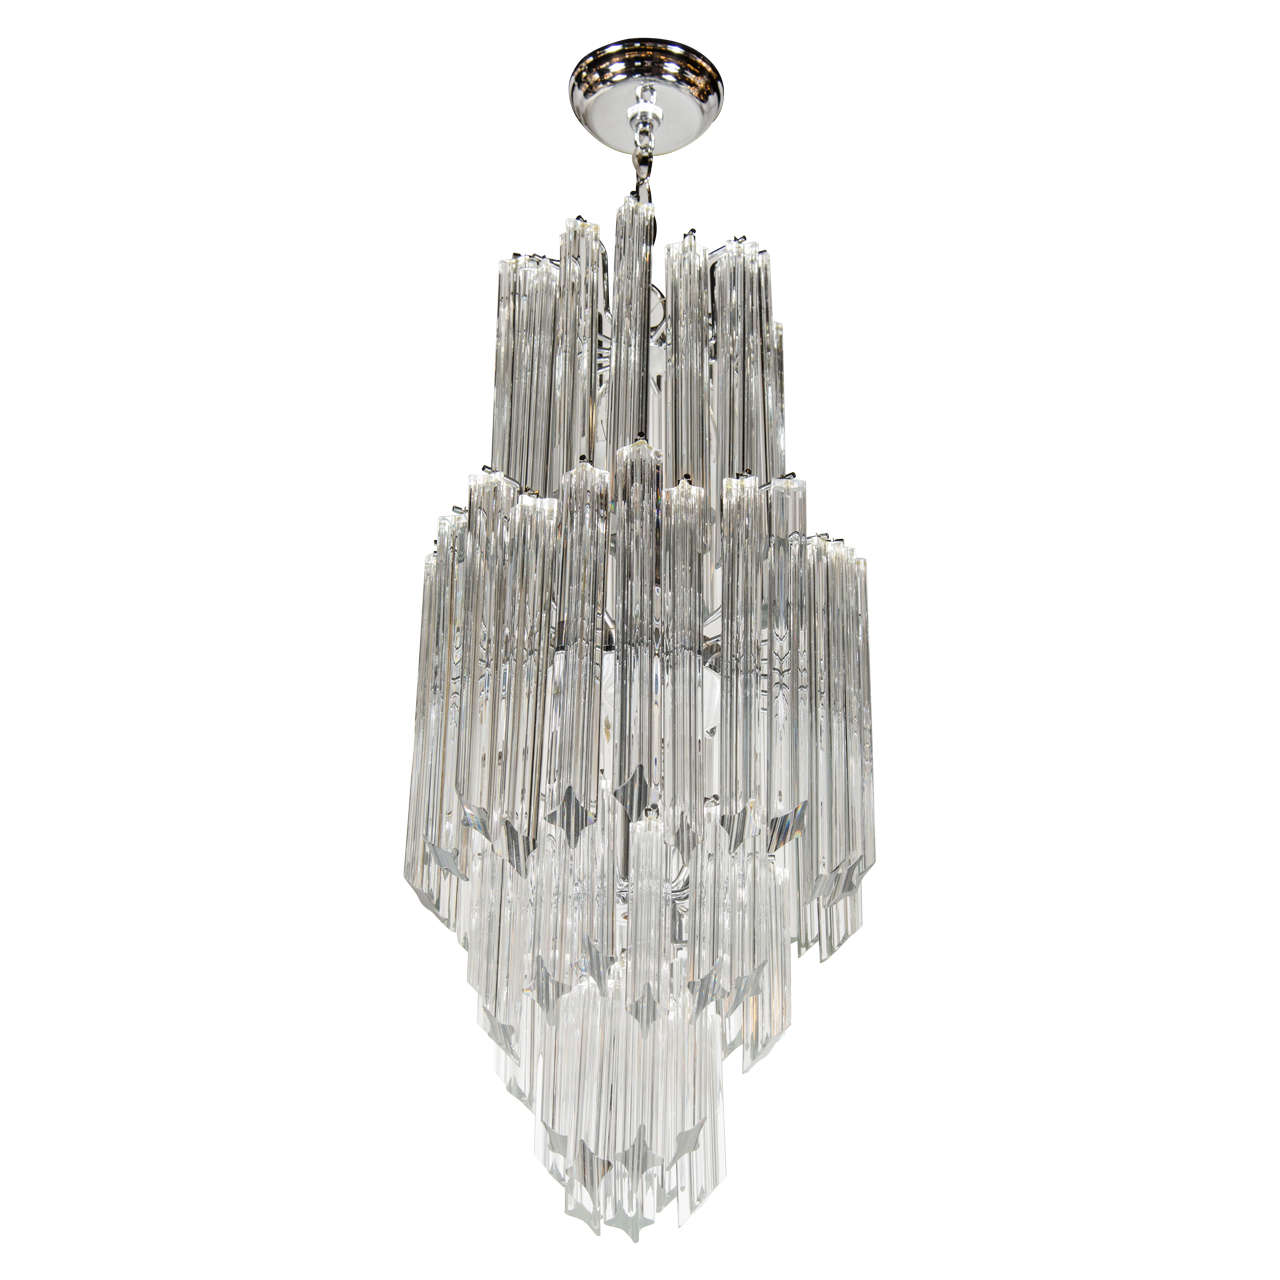 Mid-Century Modernist Skyscraper Form, Four-Tier Cut Triedre Camer Chandelier